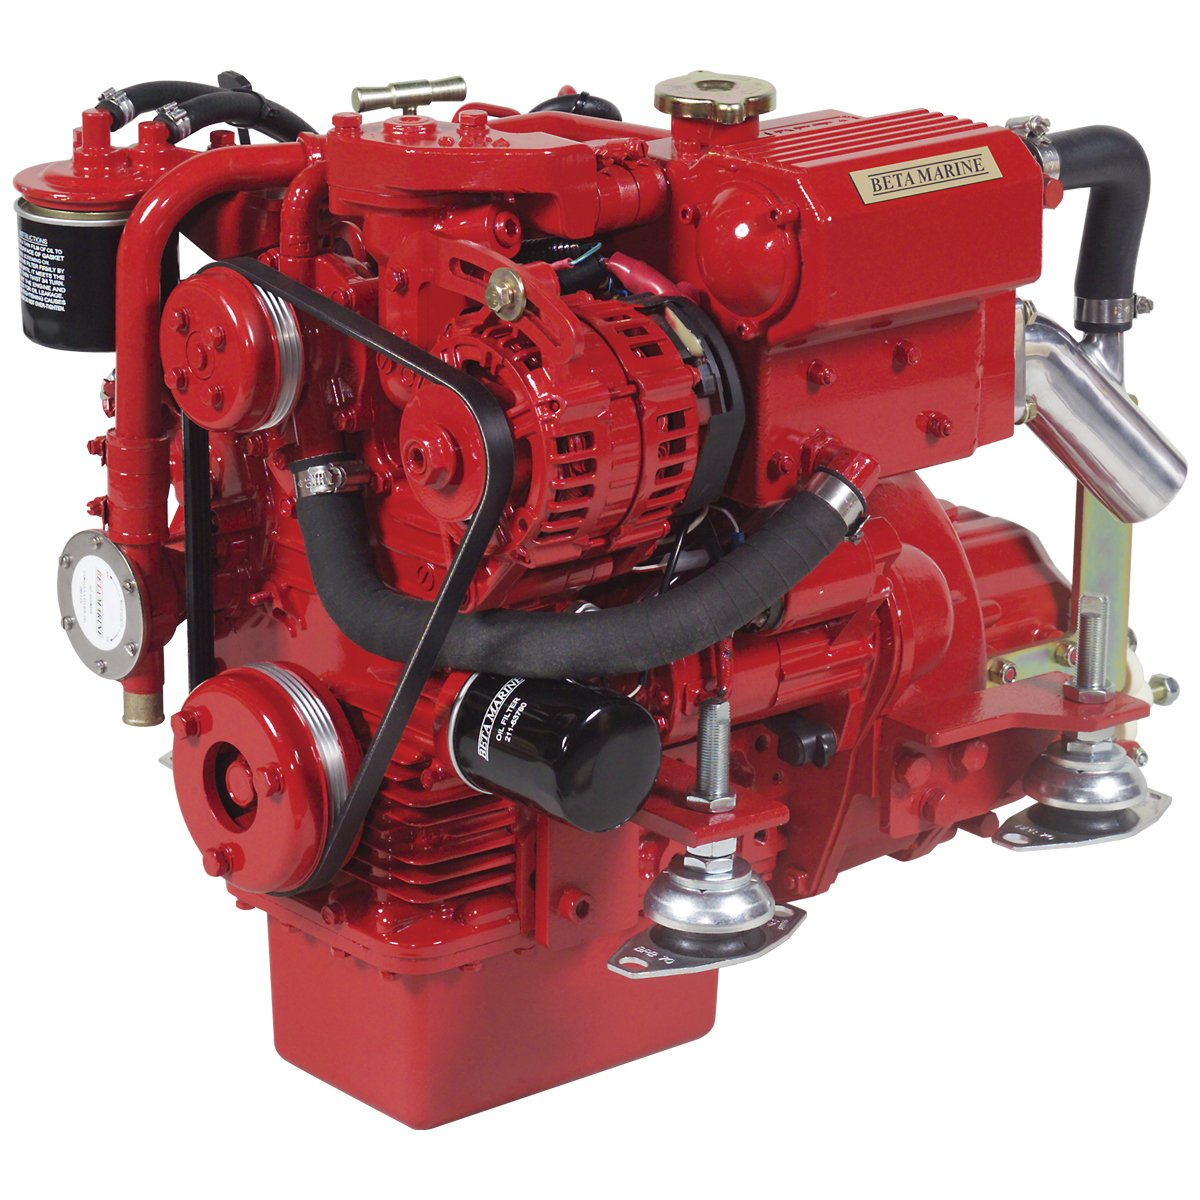 Beta Marine USA - marine diesel propulsion engines - Beta 16 heat exchanger engine